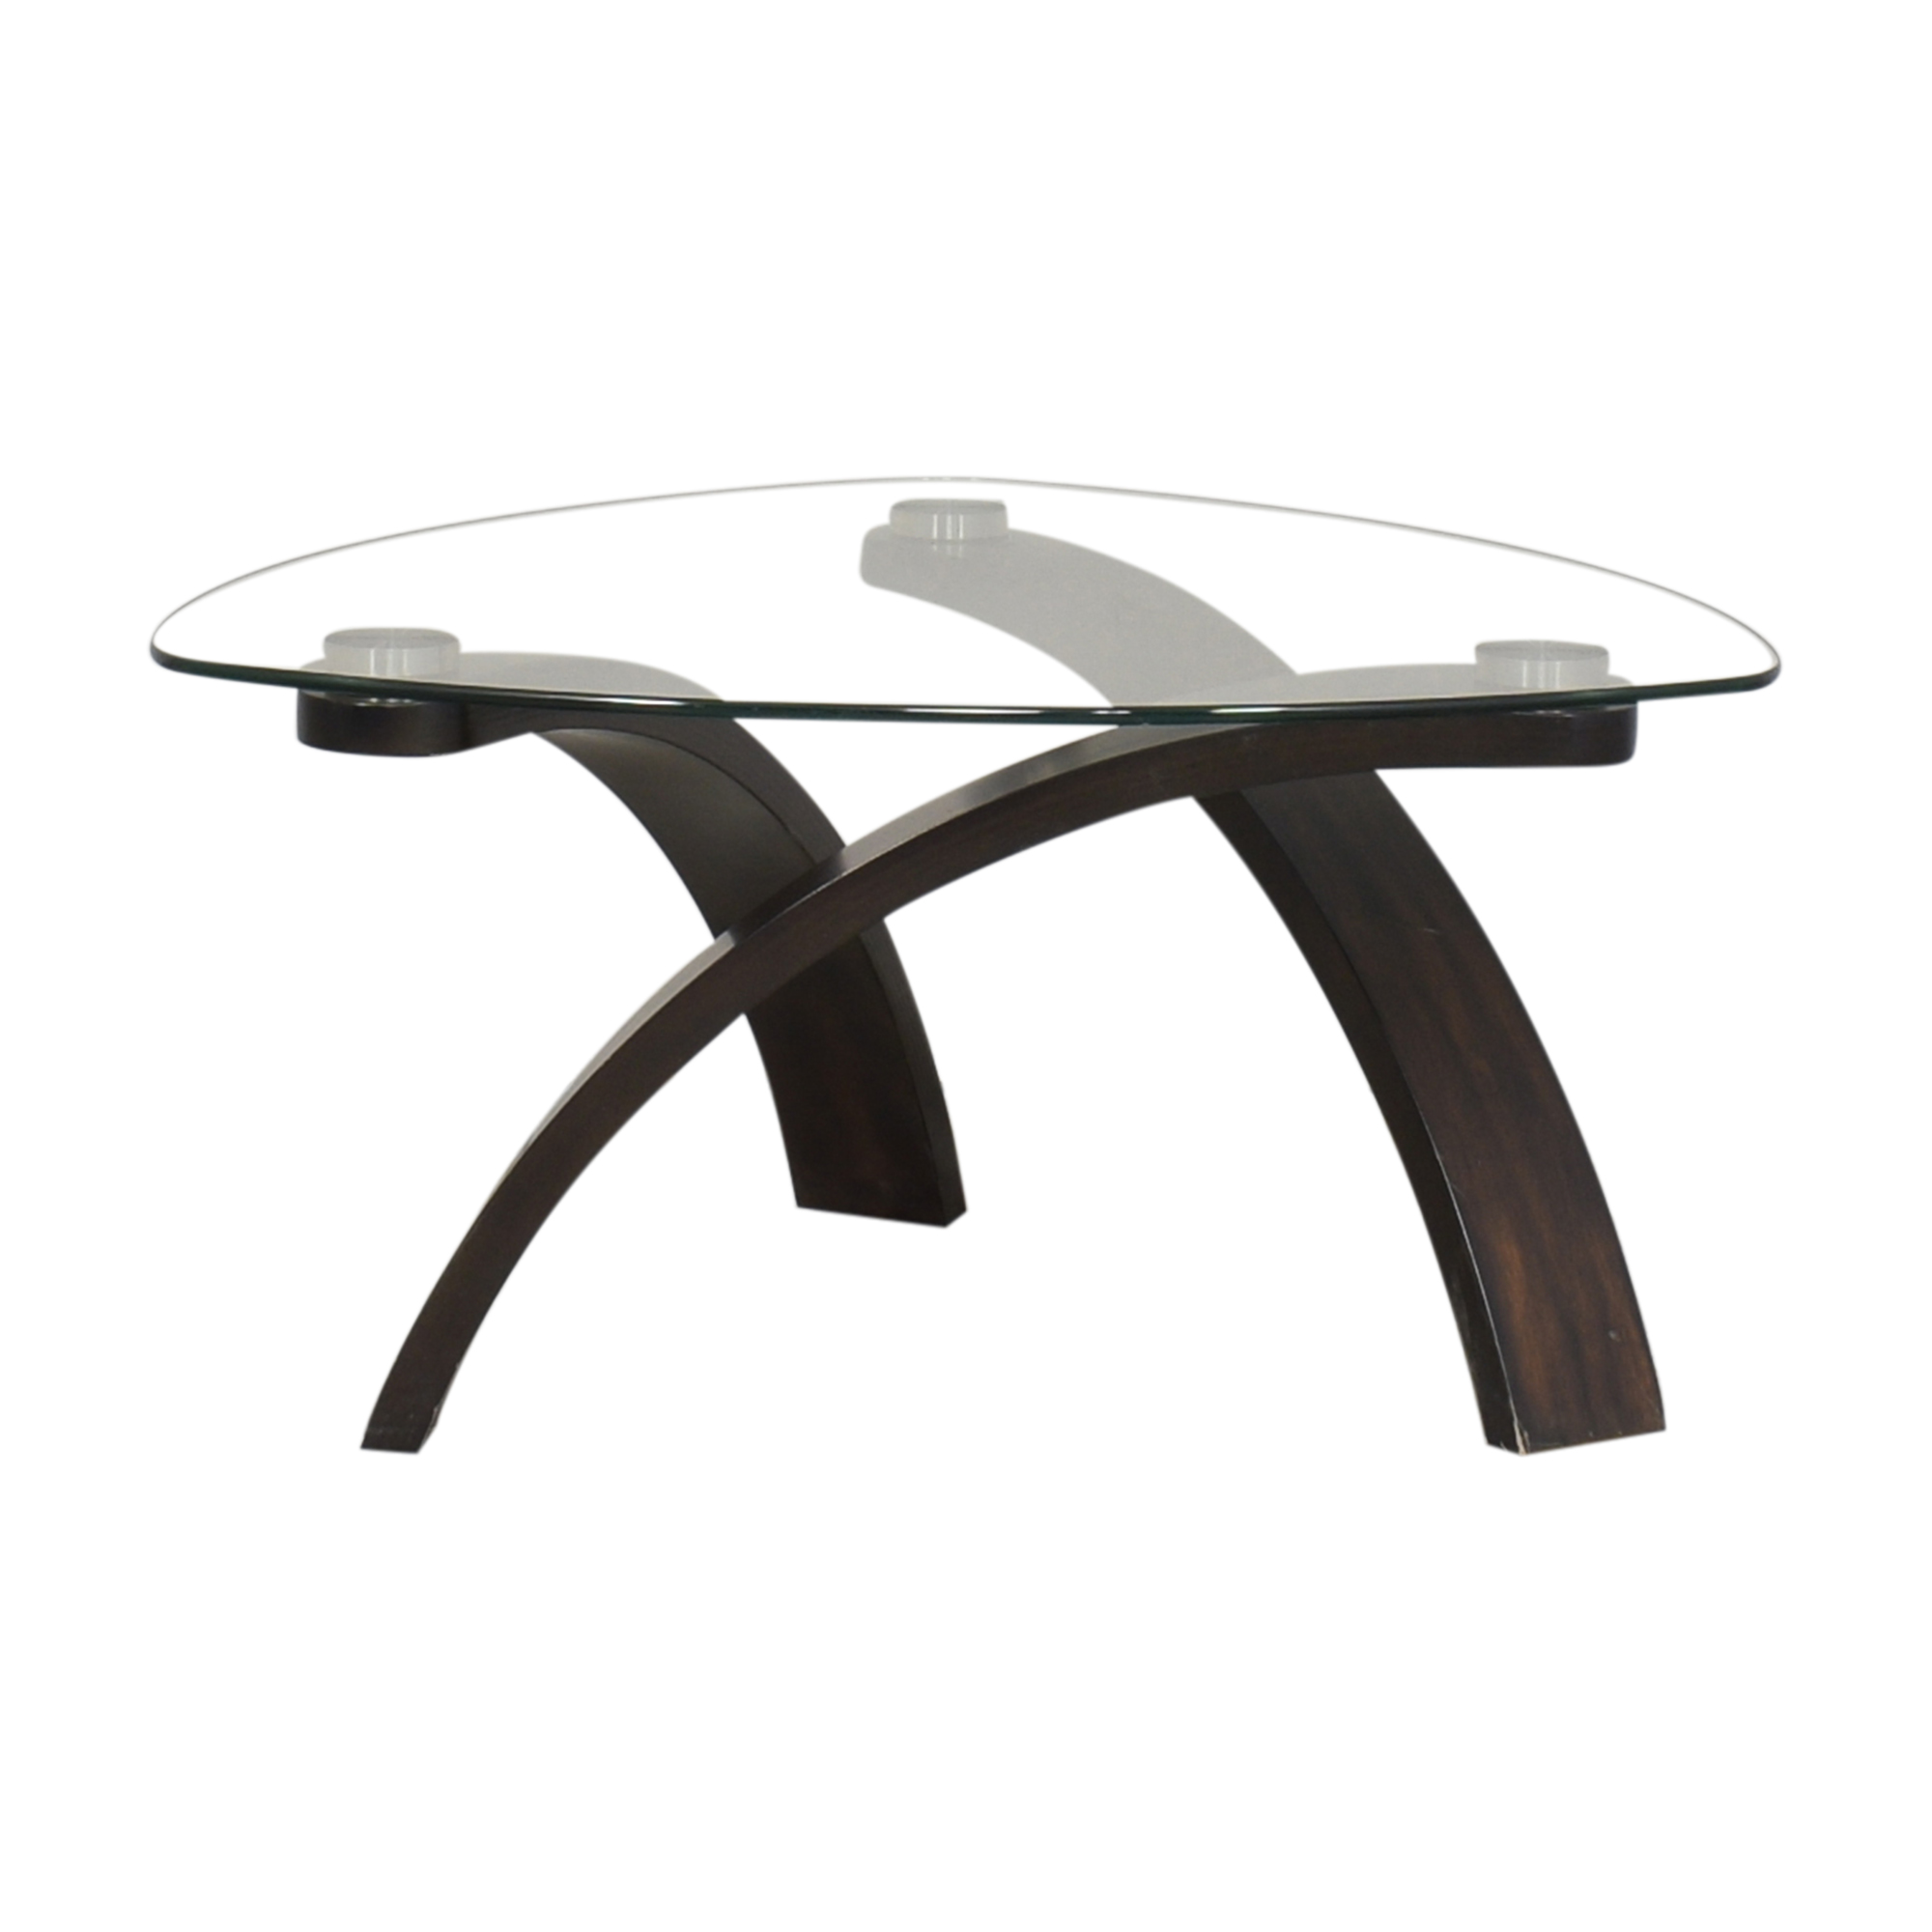 Raymour & Flanigan Raymour & Flanigan Allure Coffee Table on sale